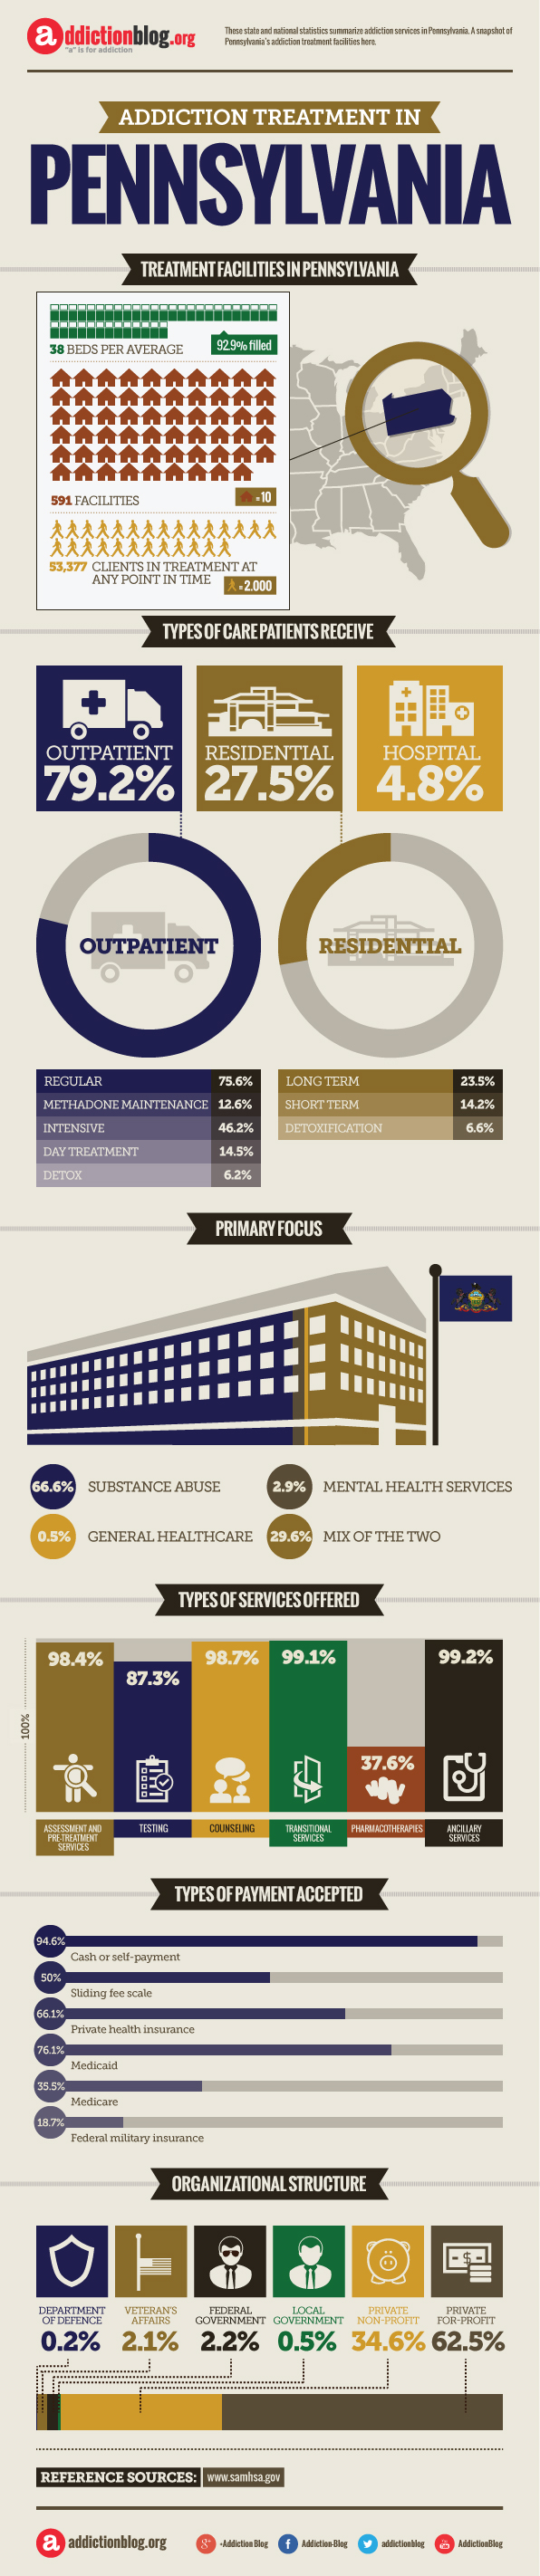 Addiction rehab facilities in PA (INFOGRAPHIC)